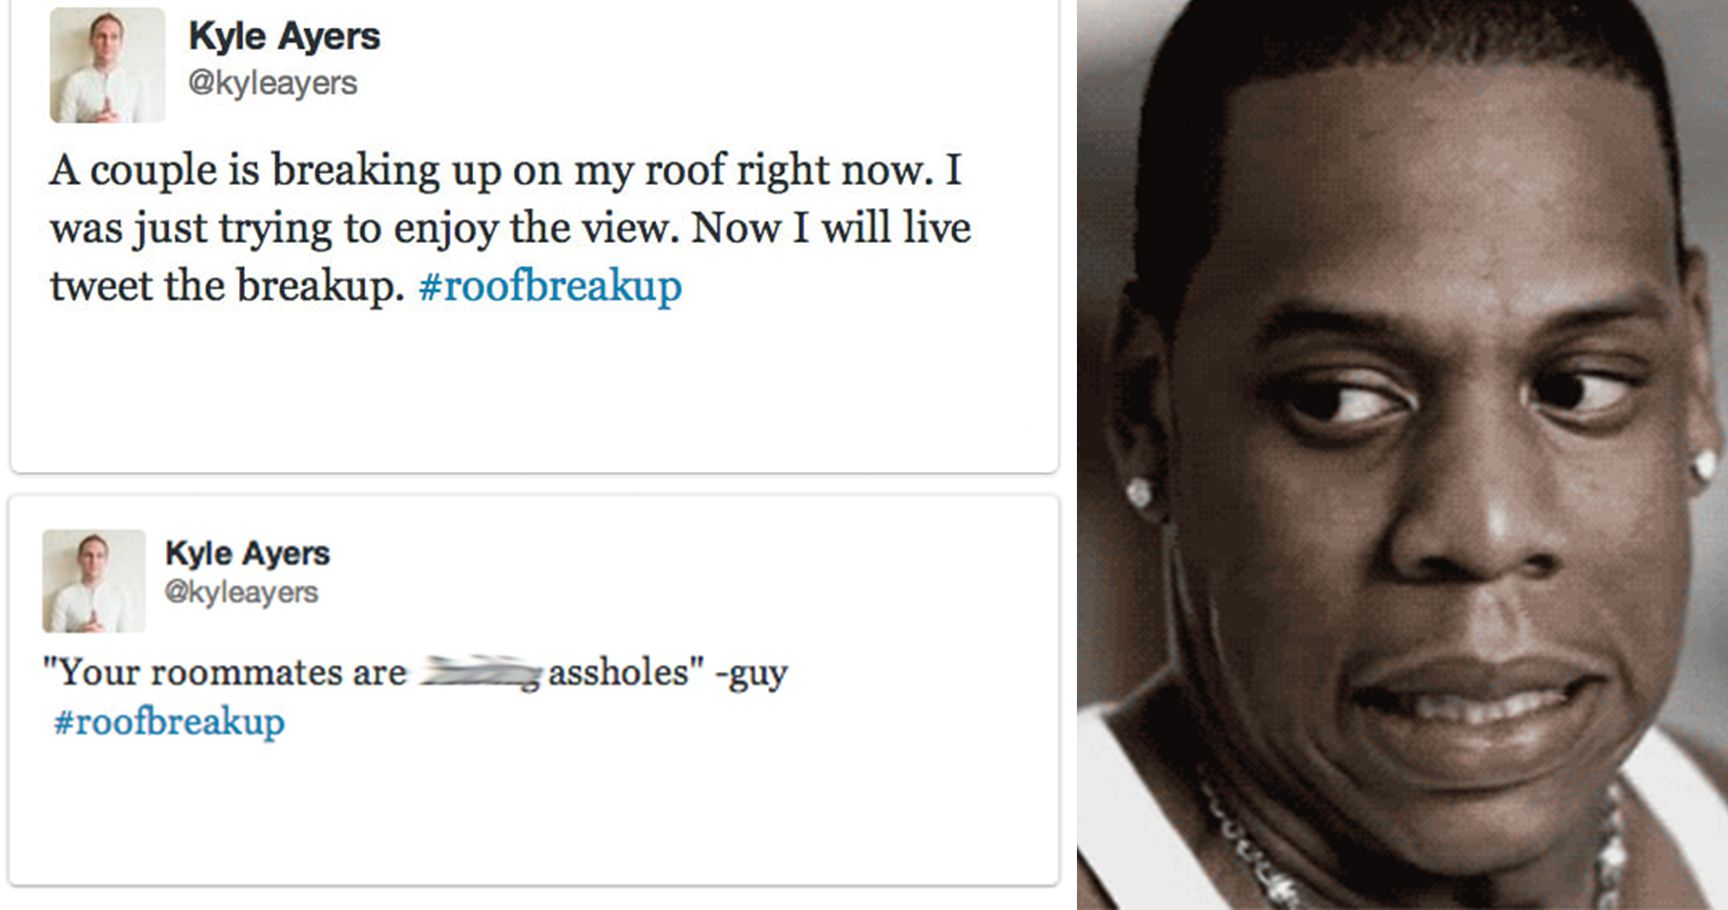 15 Of The Messiest Live-Tweeted Breakups That Will Make You Cringe